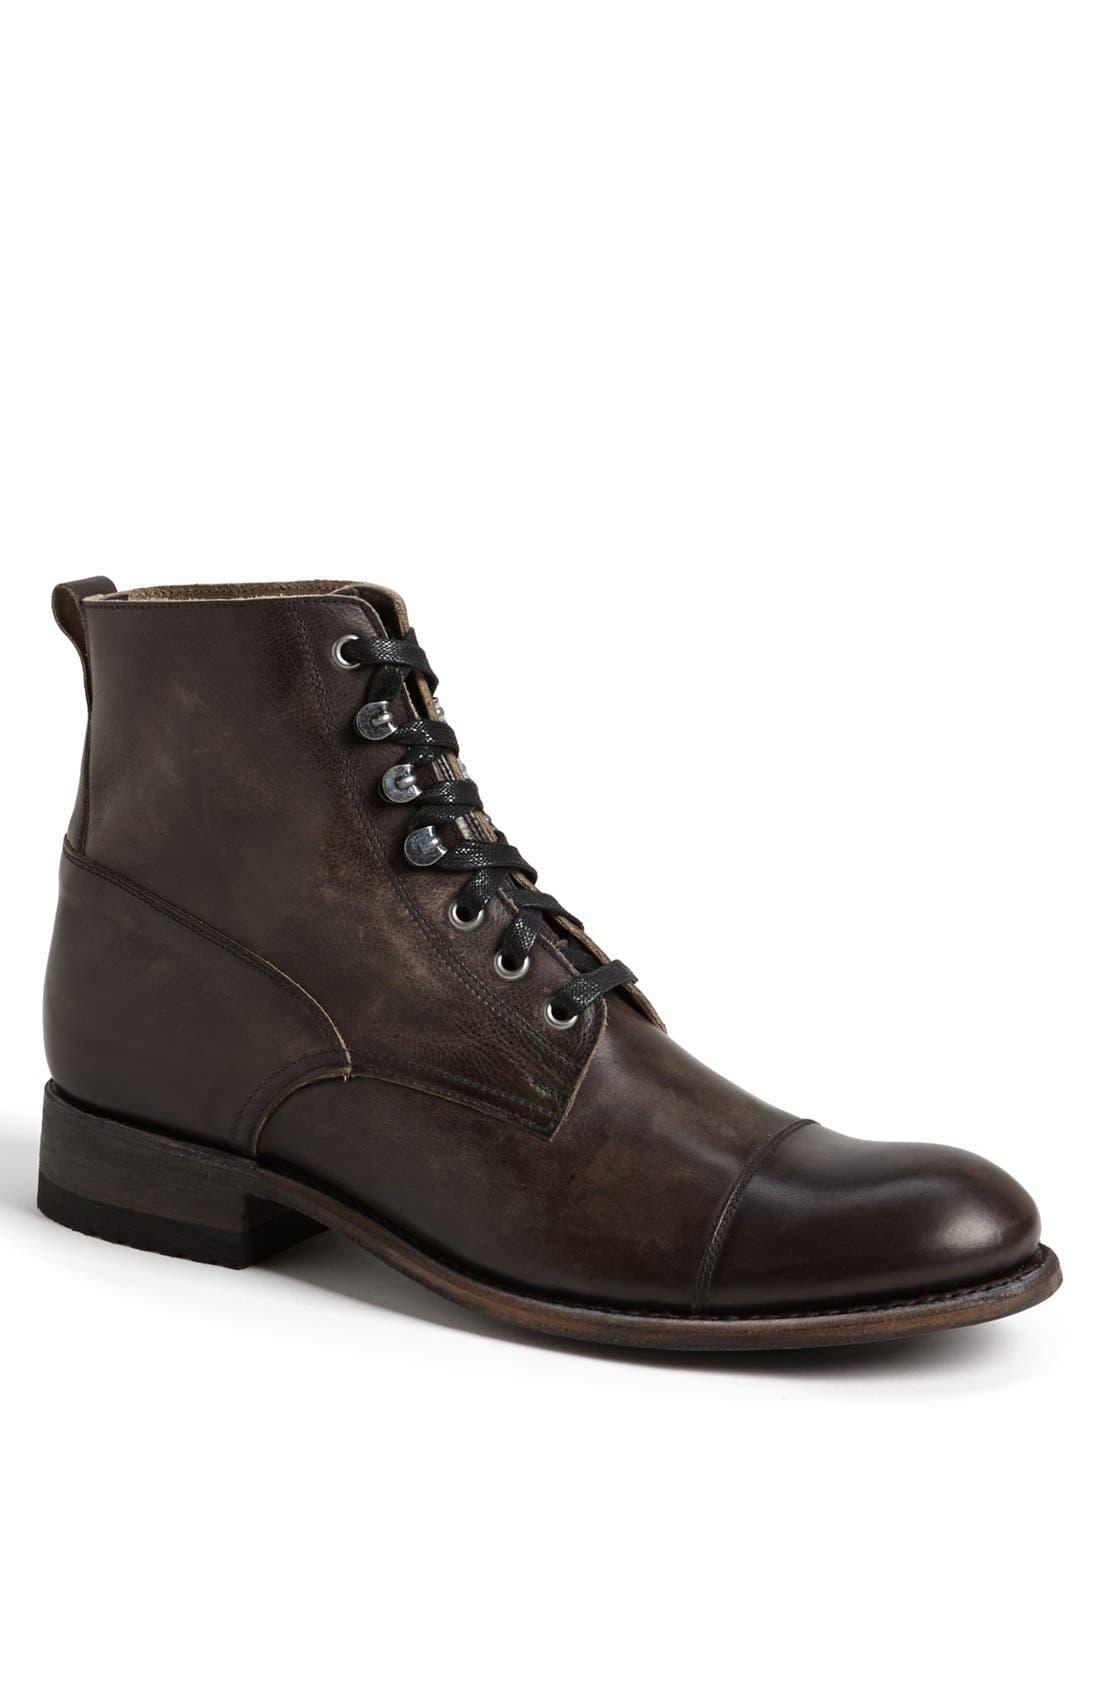 'Station' Cap Toe Boot,                             Main thumbnail 1, color,                             ANTRACITE LEATHER